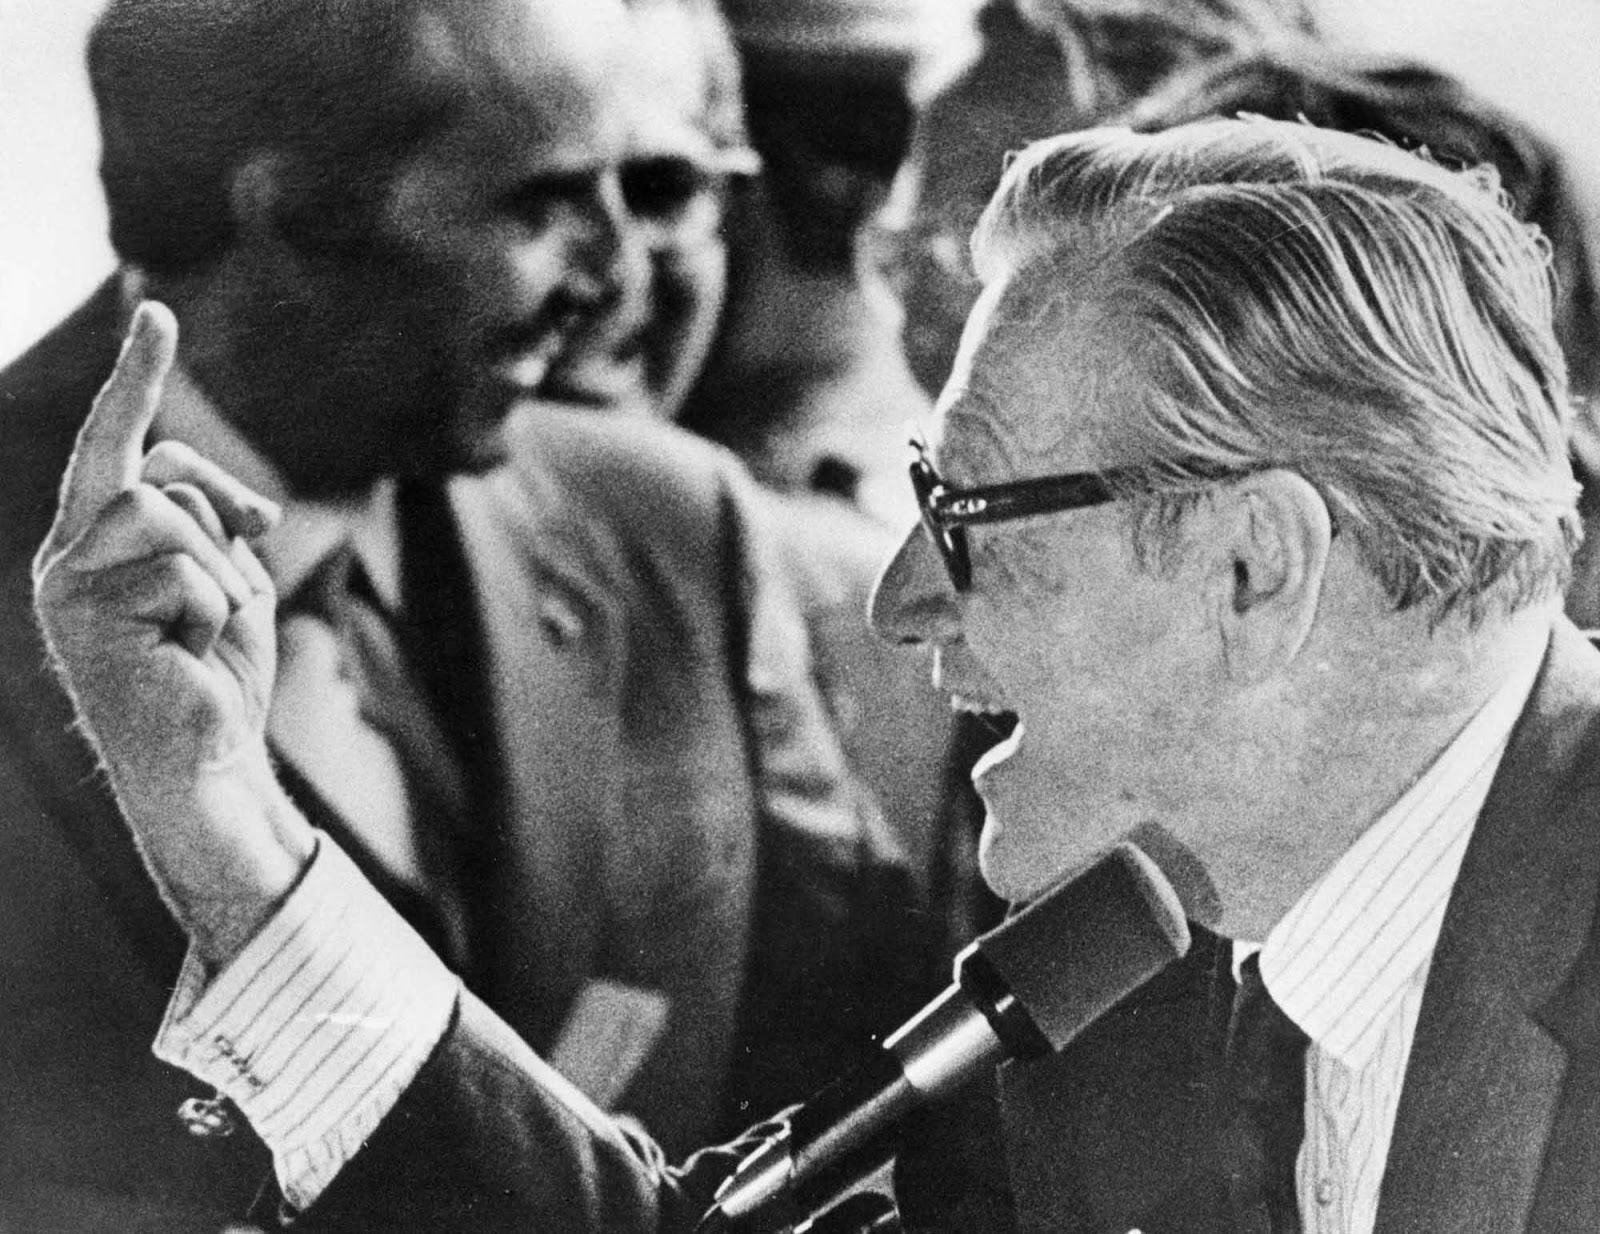 Vice President Nelson Rockefeller flips off a crowd of young hecklers, Binghamton, NY, September 16, 1976.